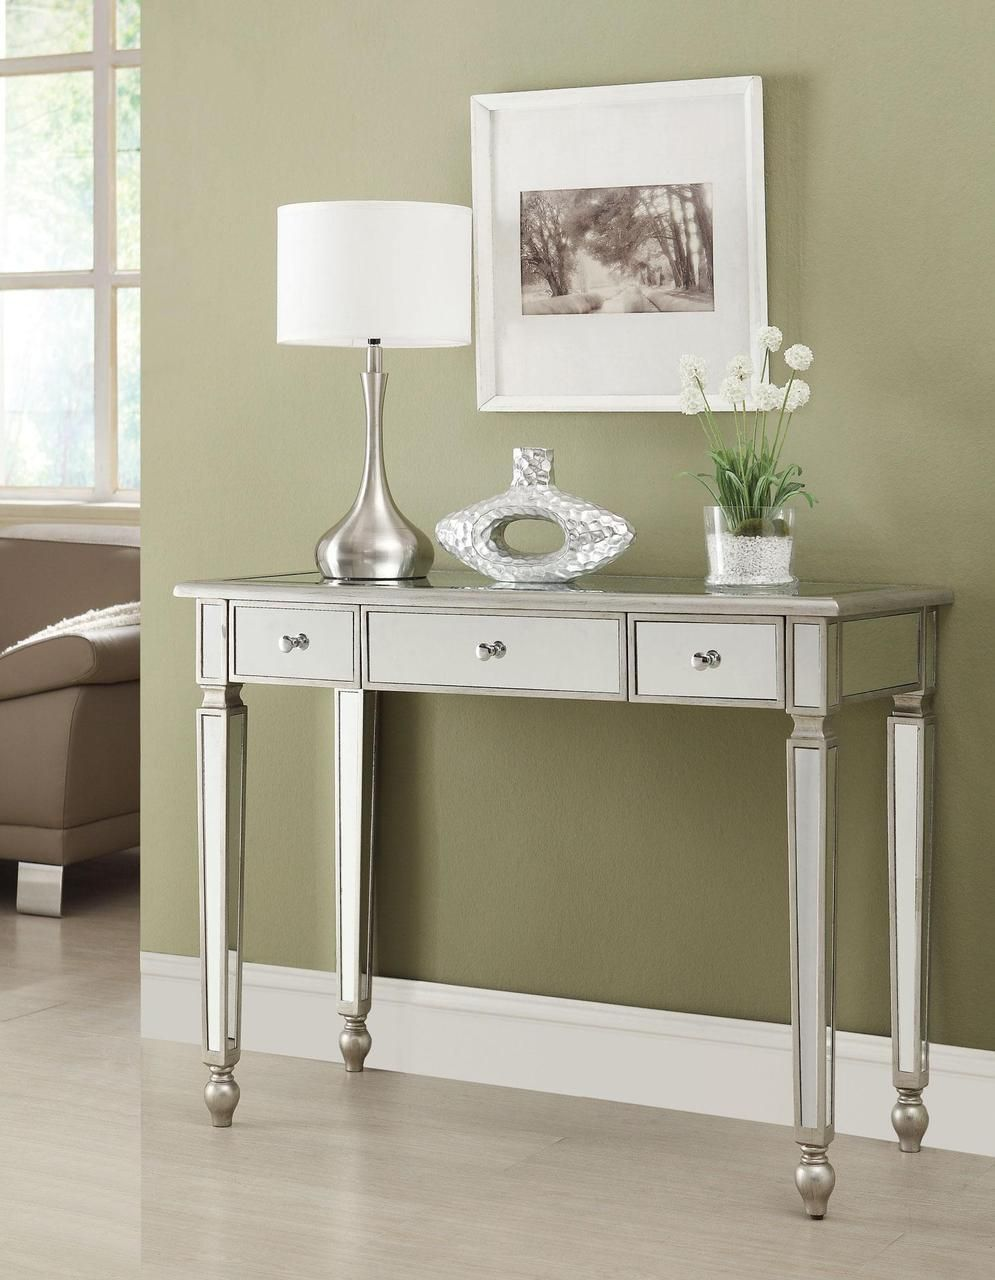 Zephyr Antique Silver Mirrored Makeup Vanity Desk Mirrored Sofa